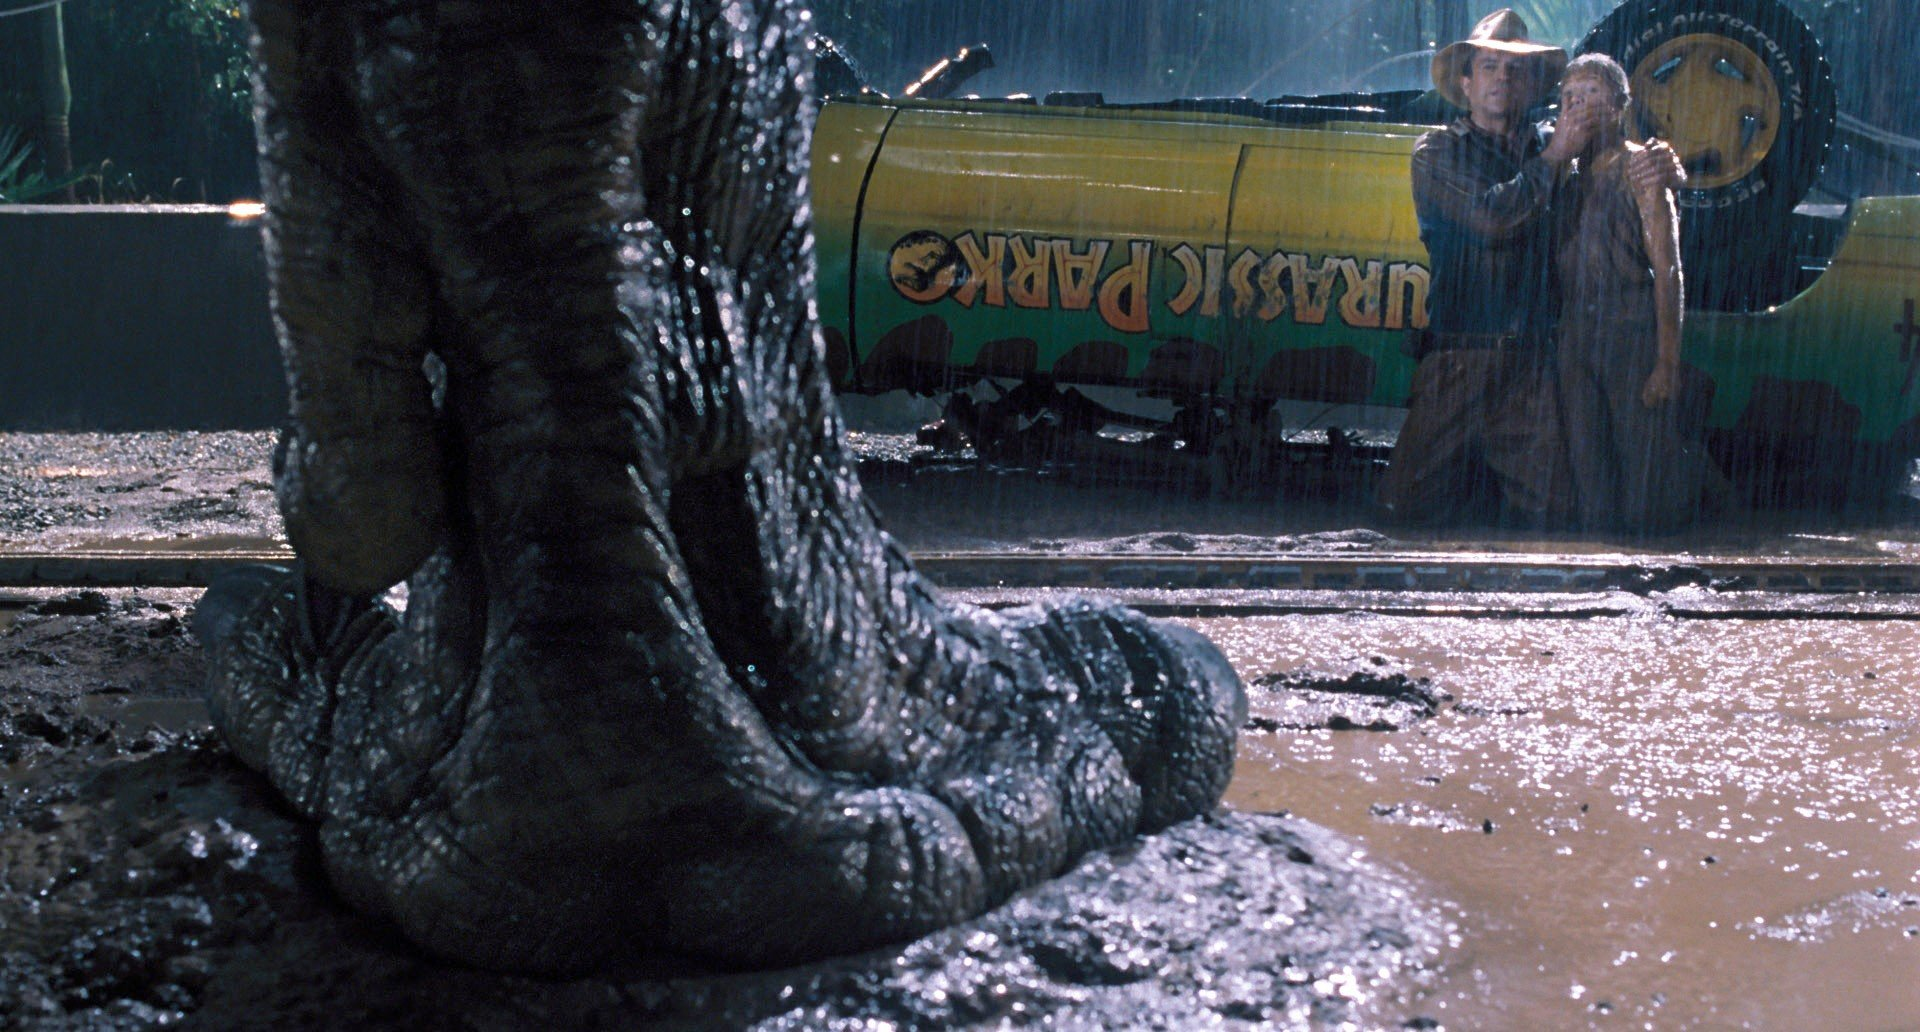 We could have had a 'Goth-rassic' Park